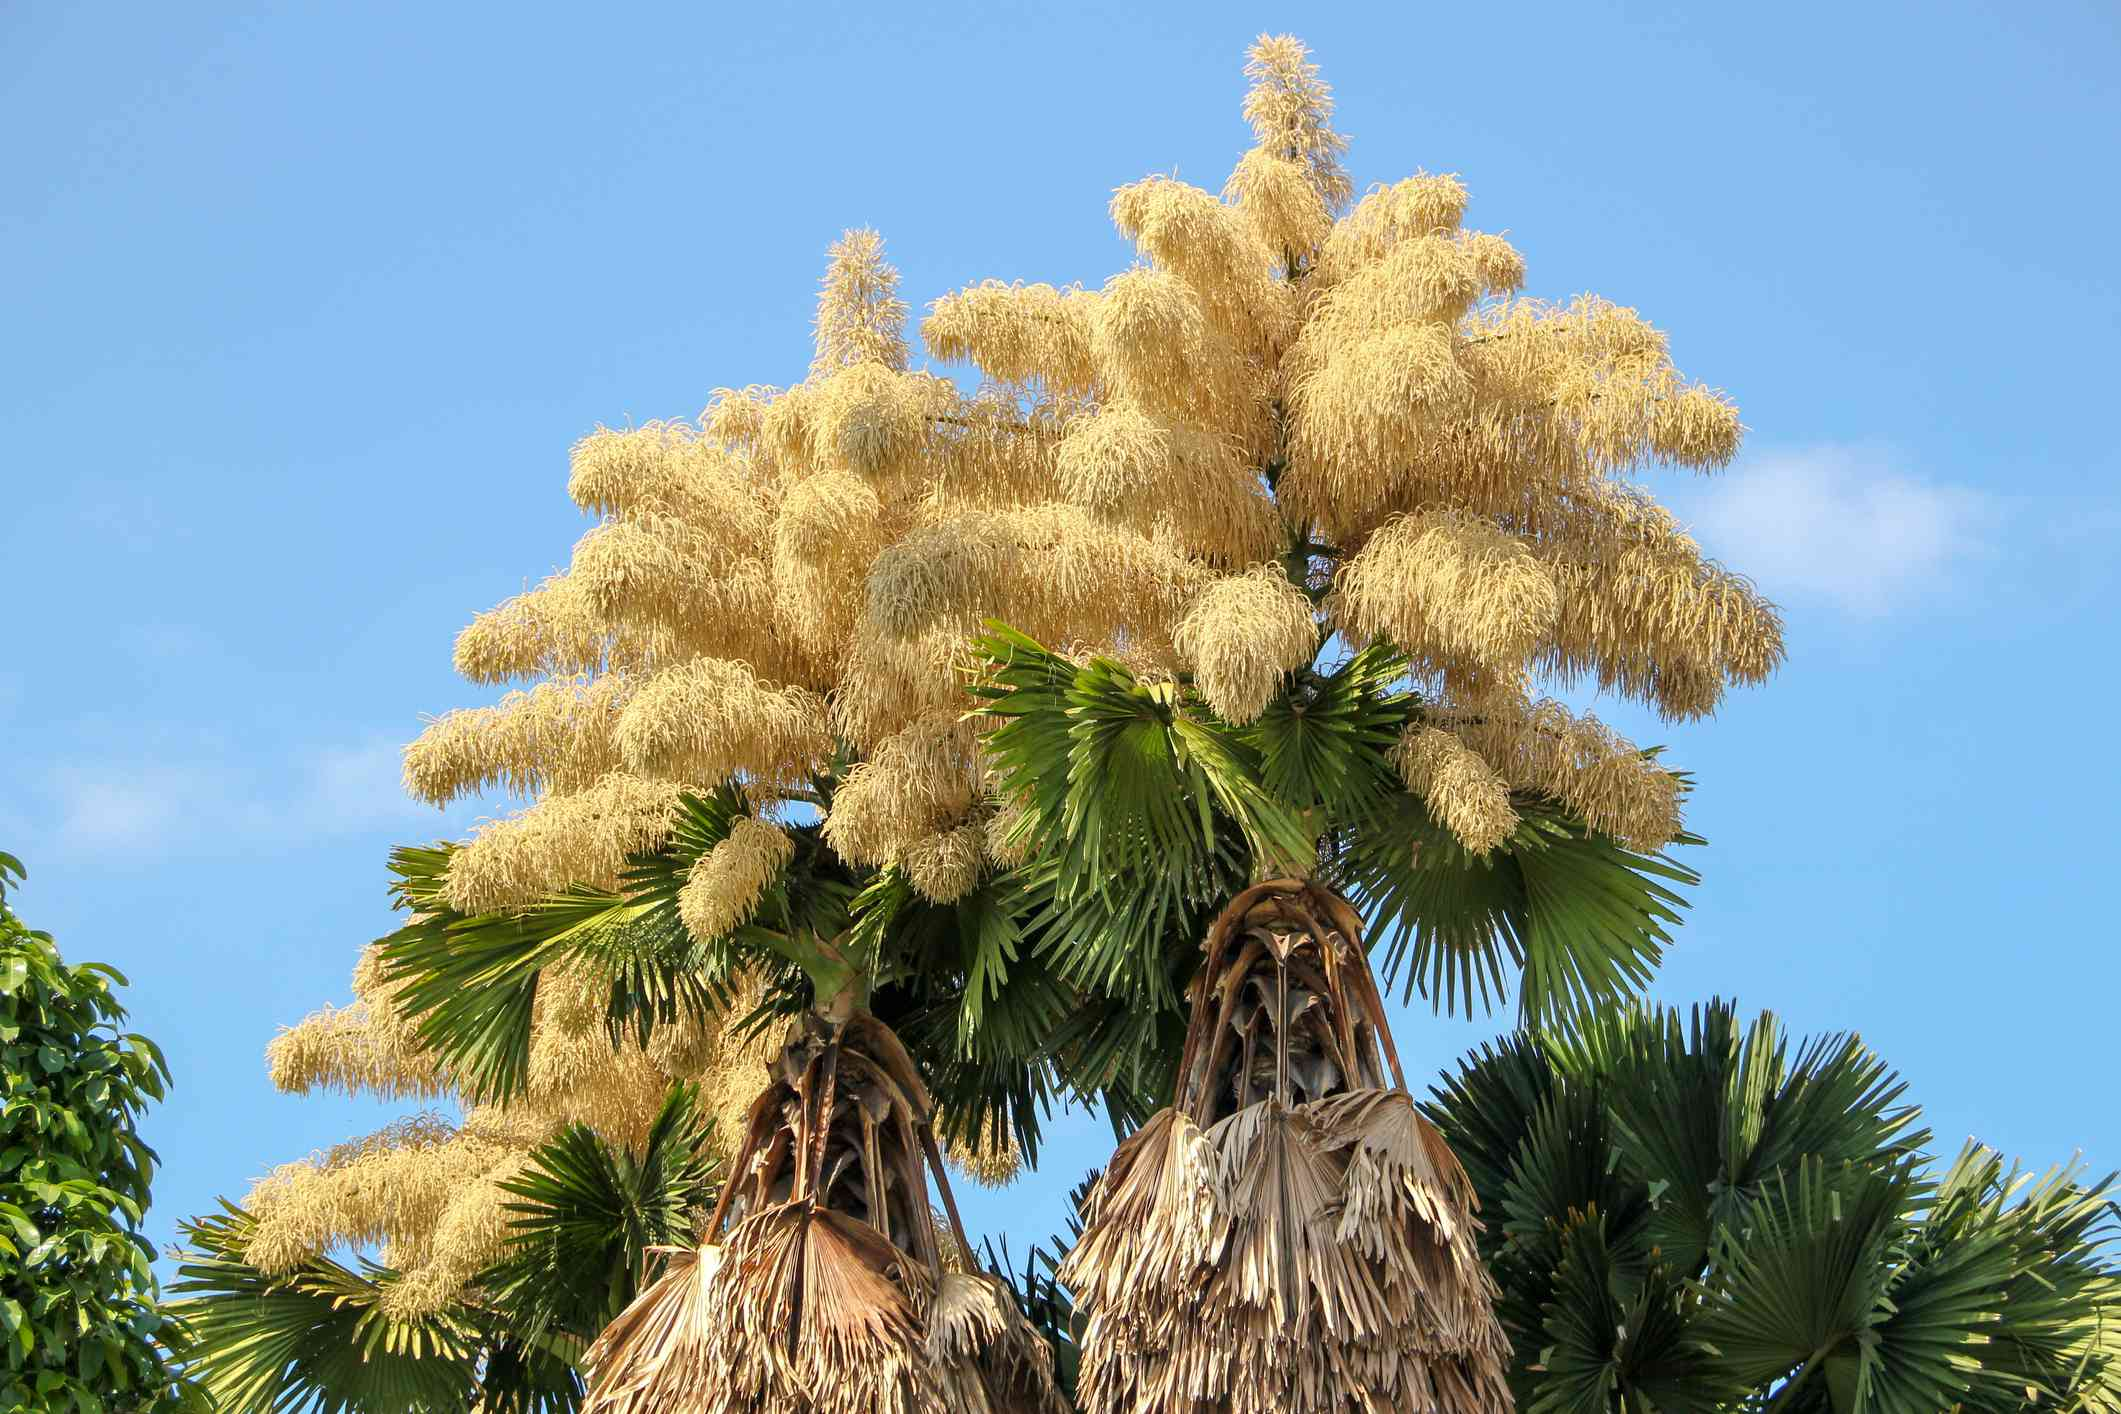 Flowering tops of two tree-sized palm talipots